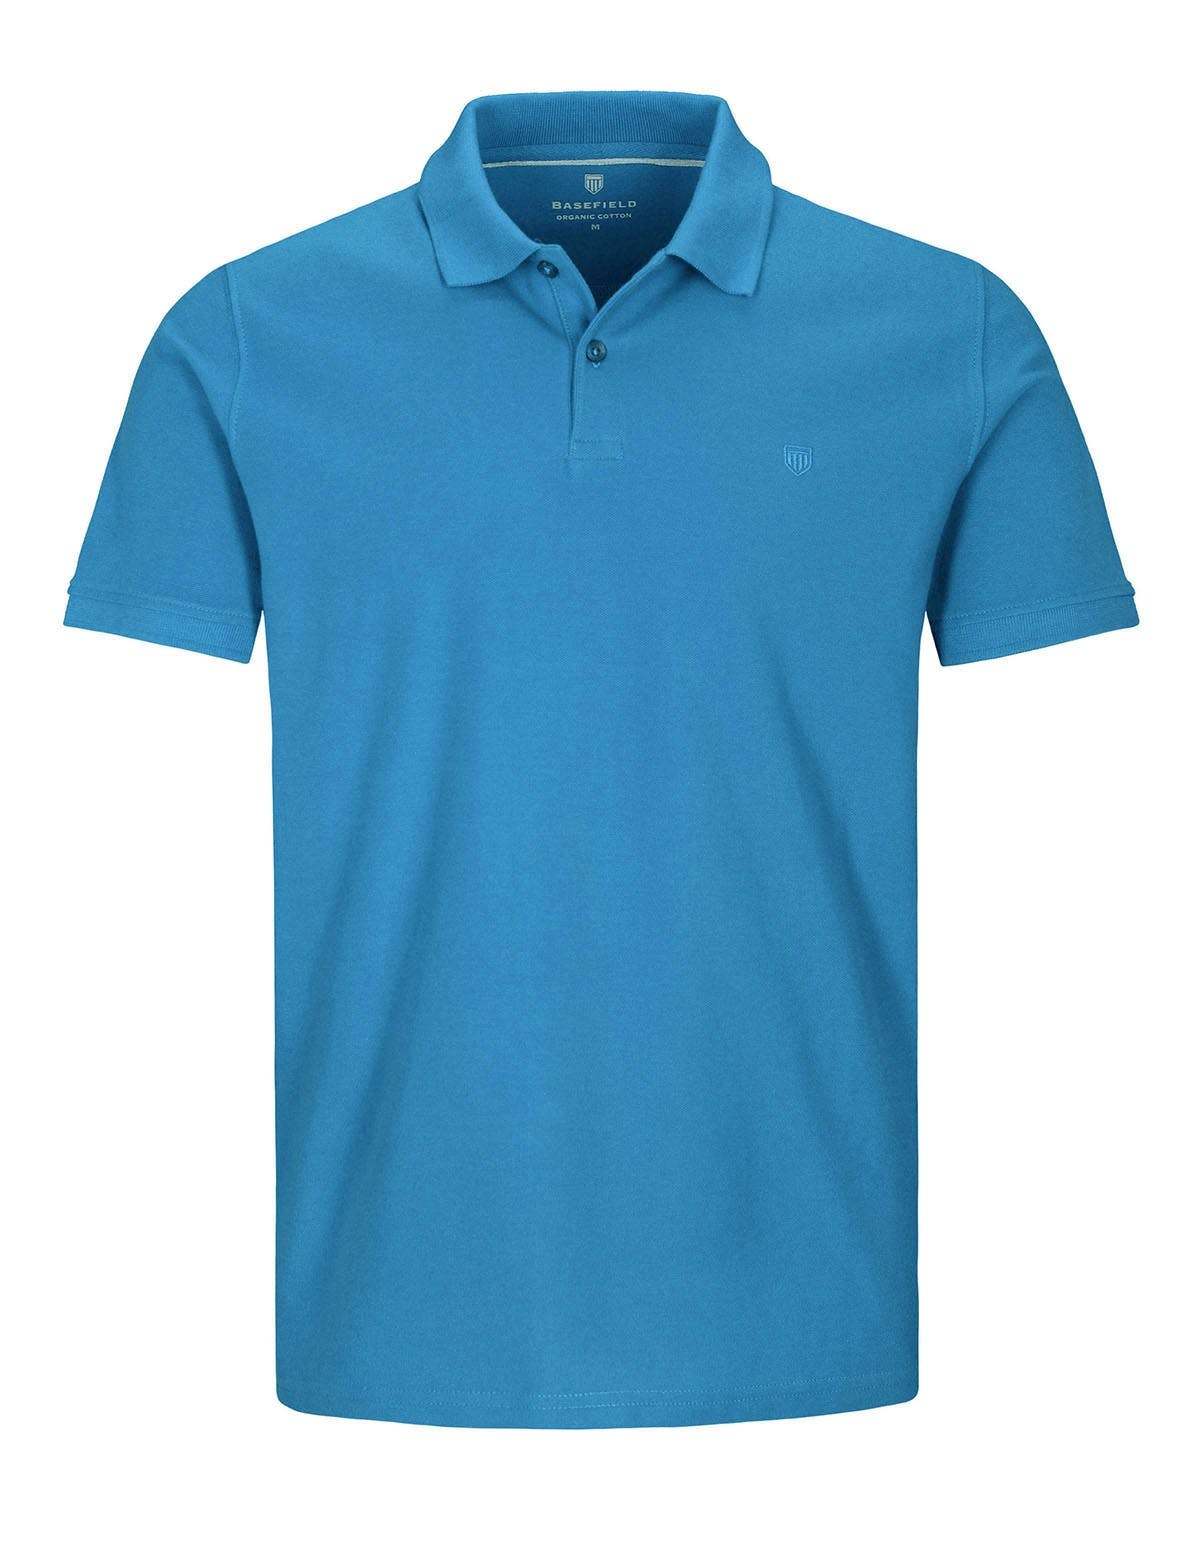 ORGANIC COTTON Polo Pique - Pacific